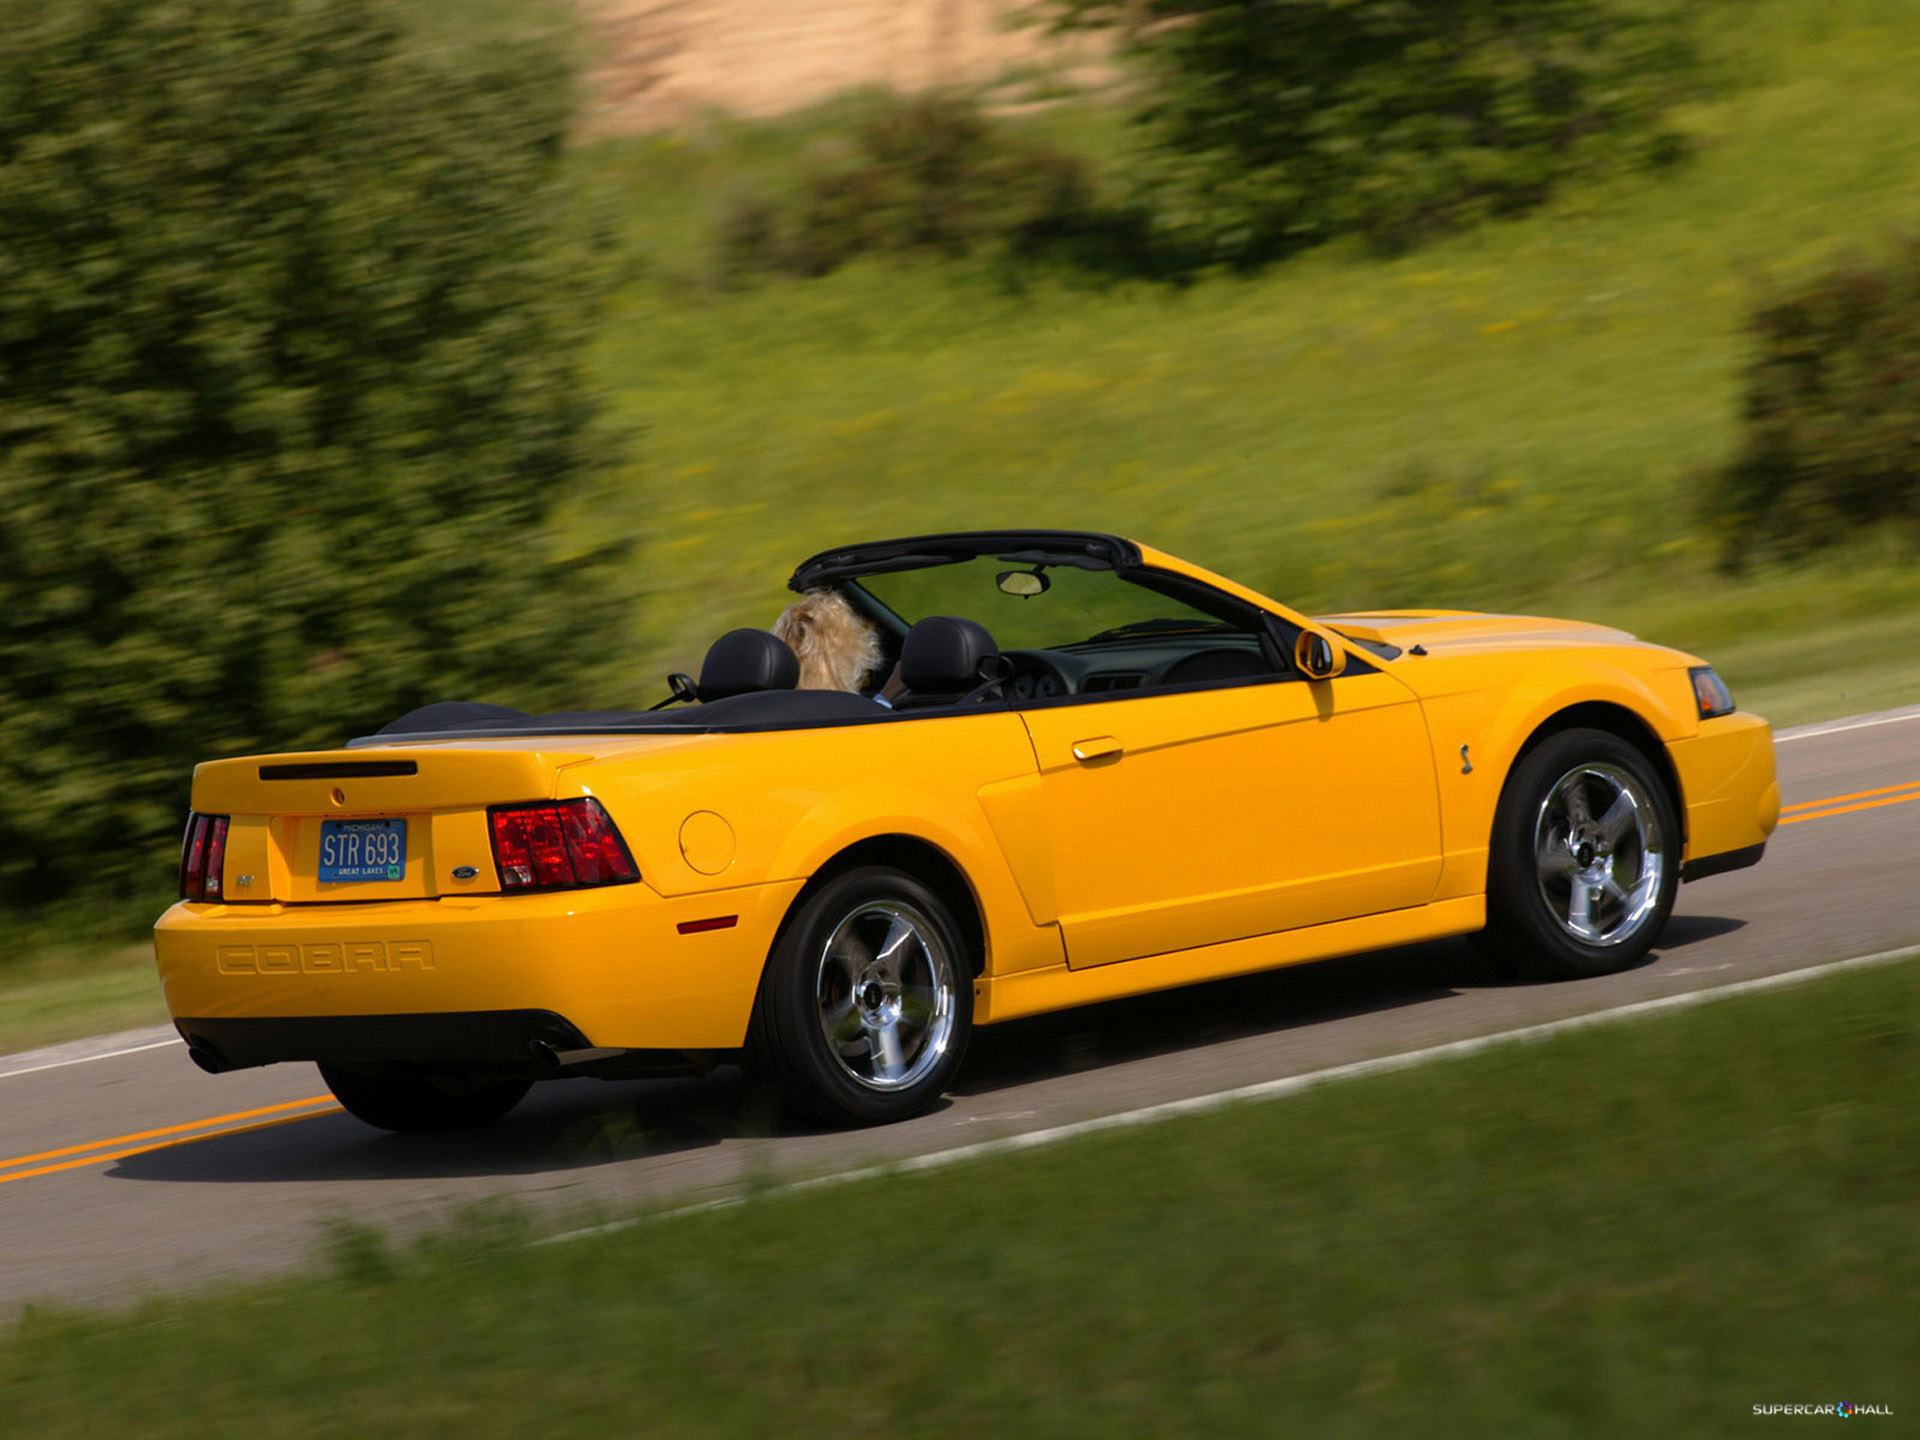 2018 Ford Mustang SVT Cobra Convertible photo - 1